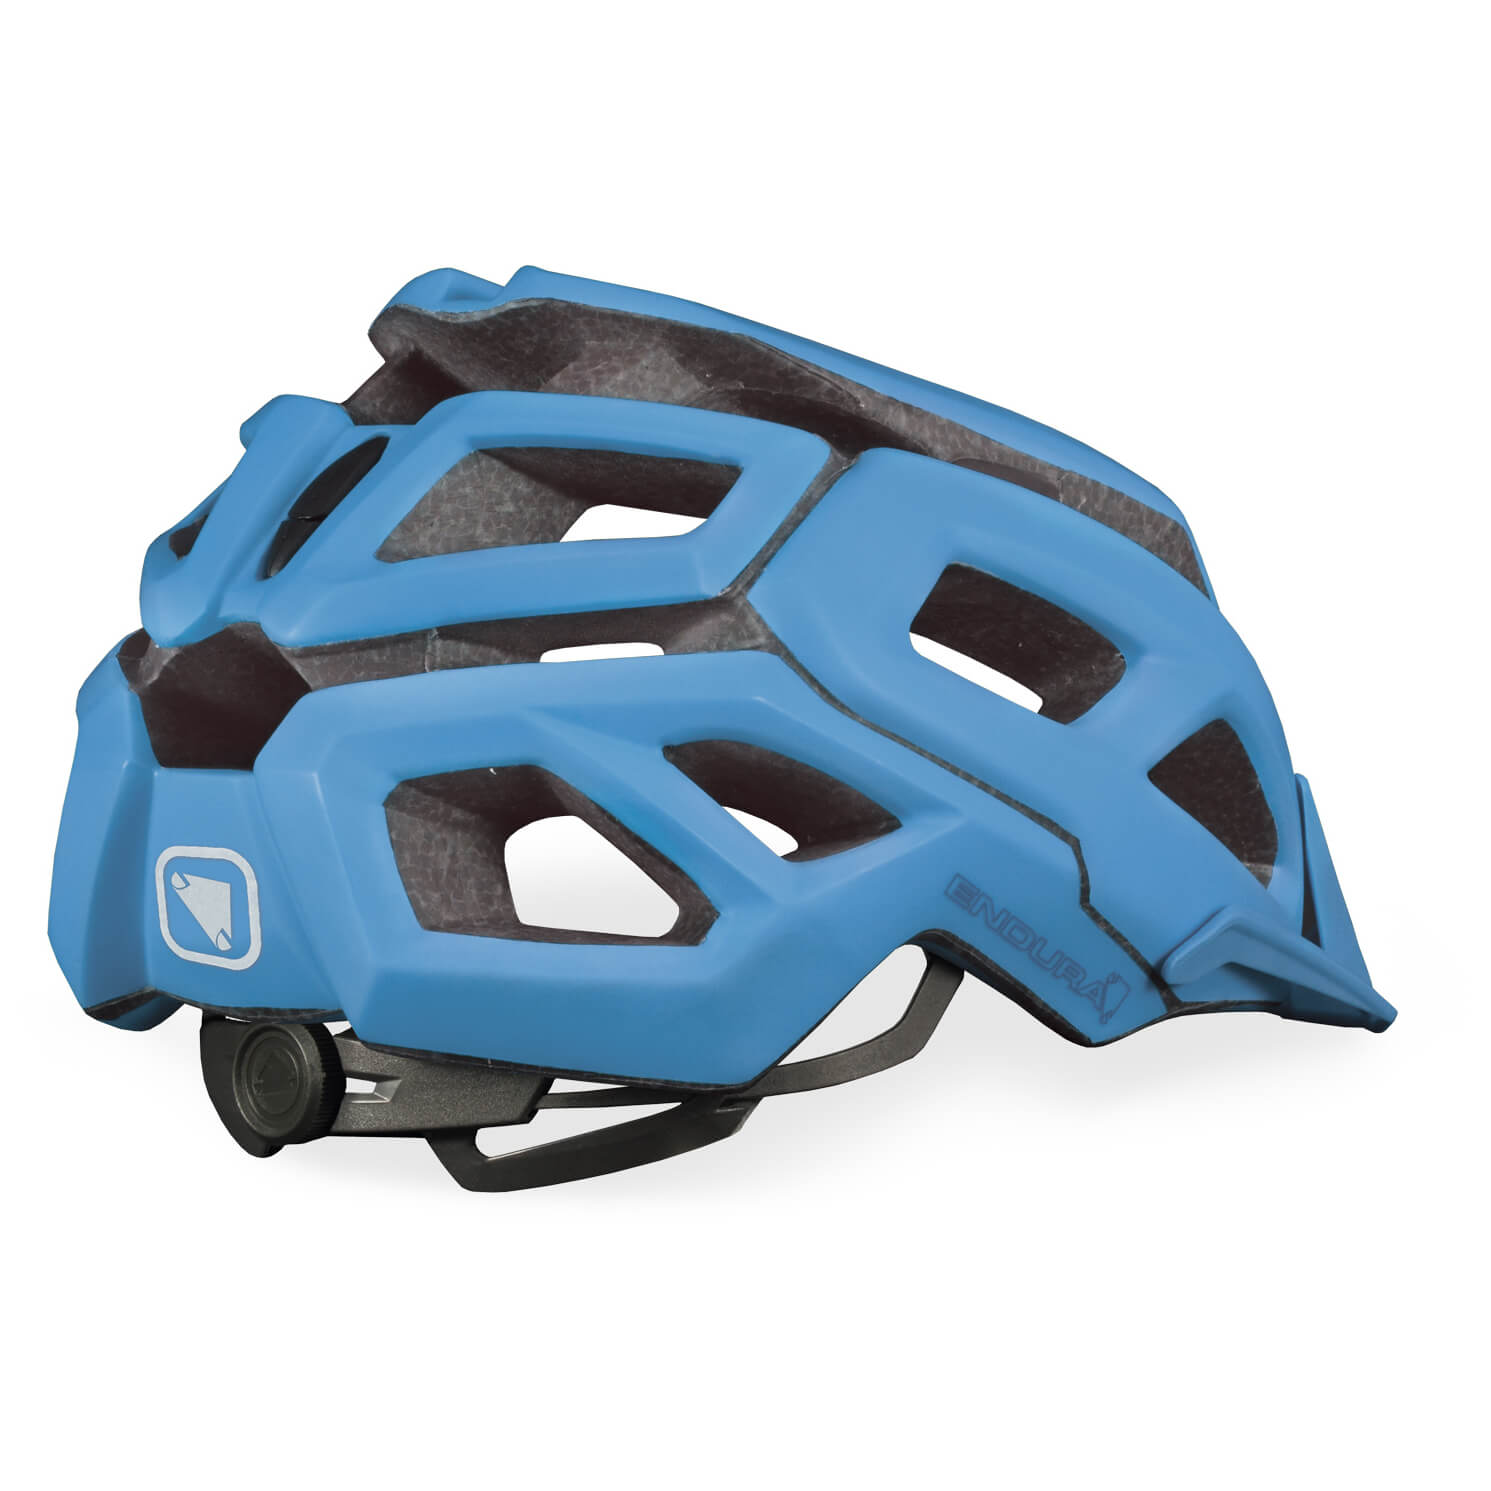 Share - Endura SingleTrack Helmet 2016